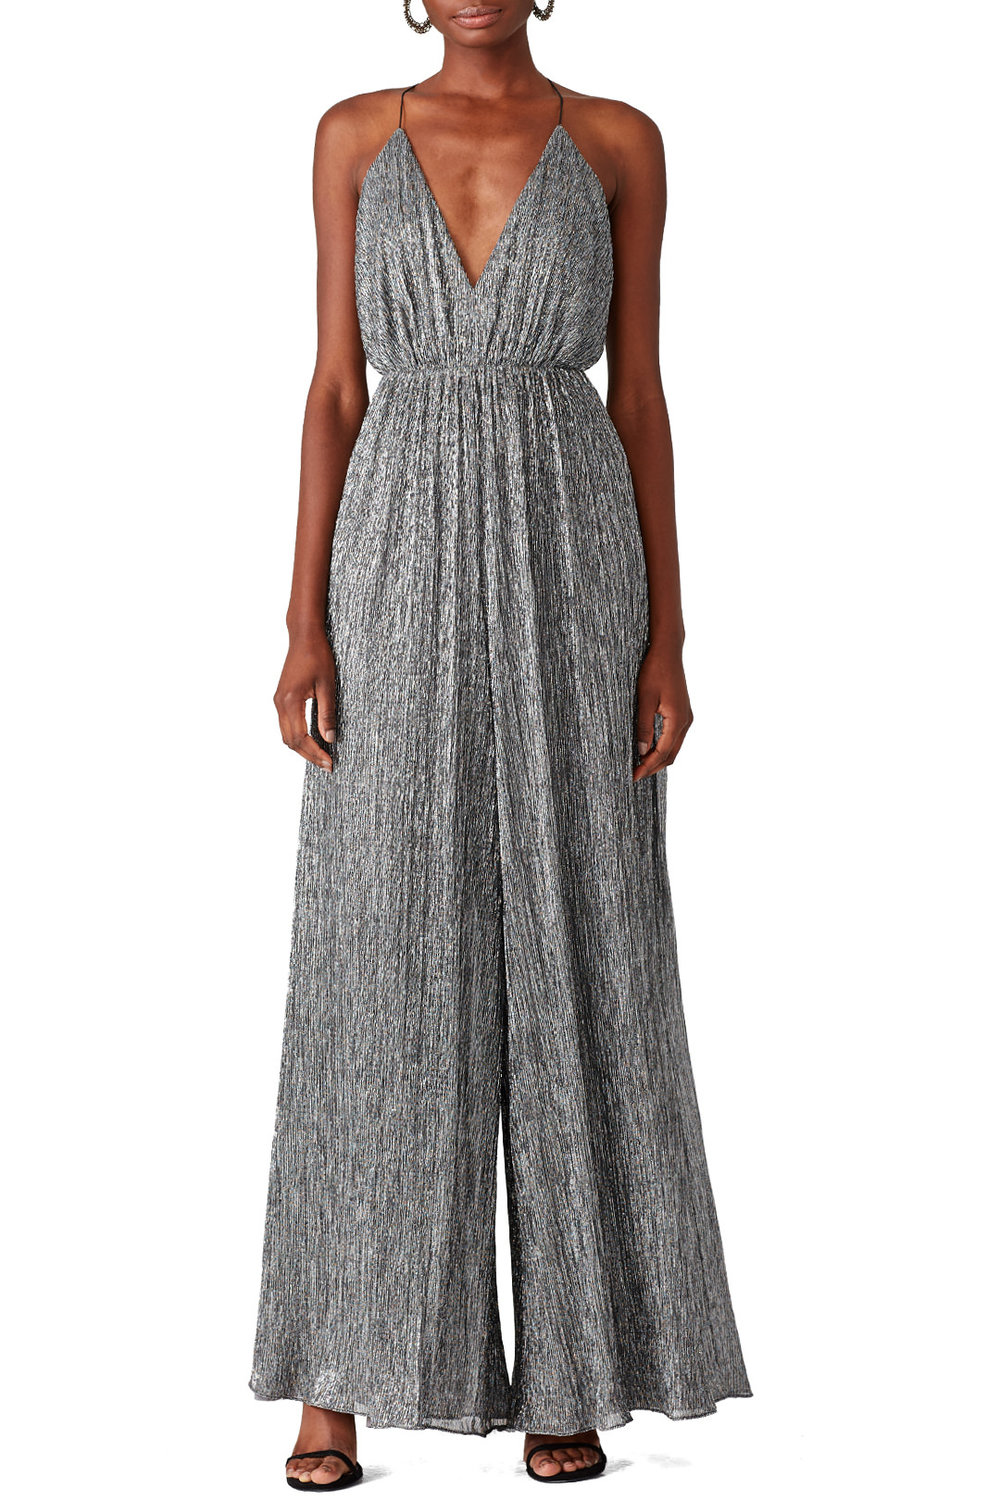 Halston Heritage Antique Jumpsuit - This is a little different than your typical NYE sequin dress and I'm into it!